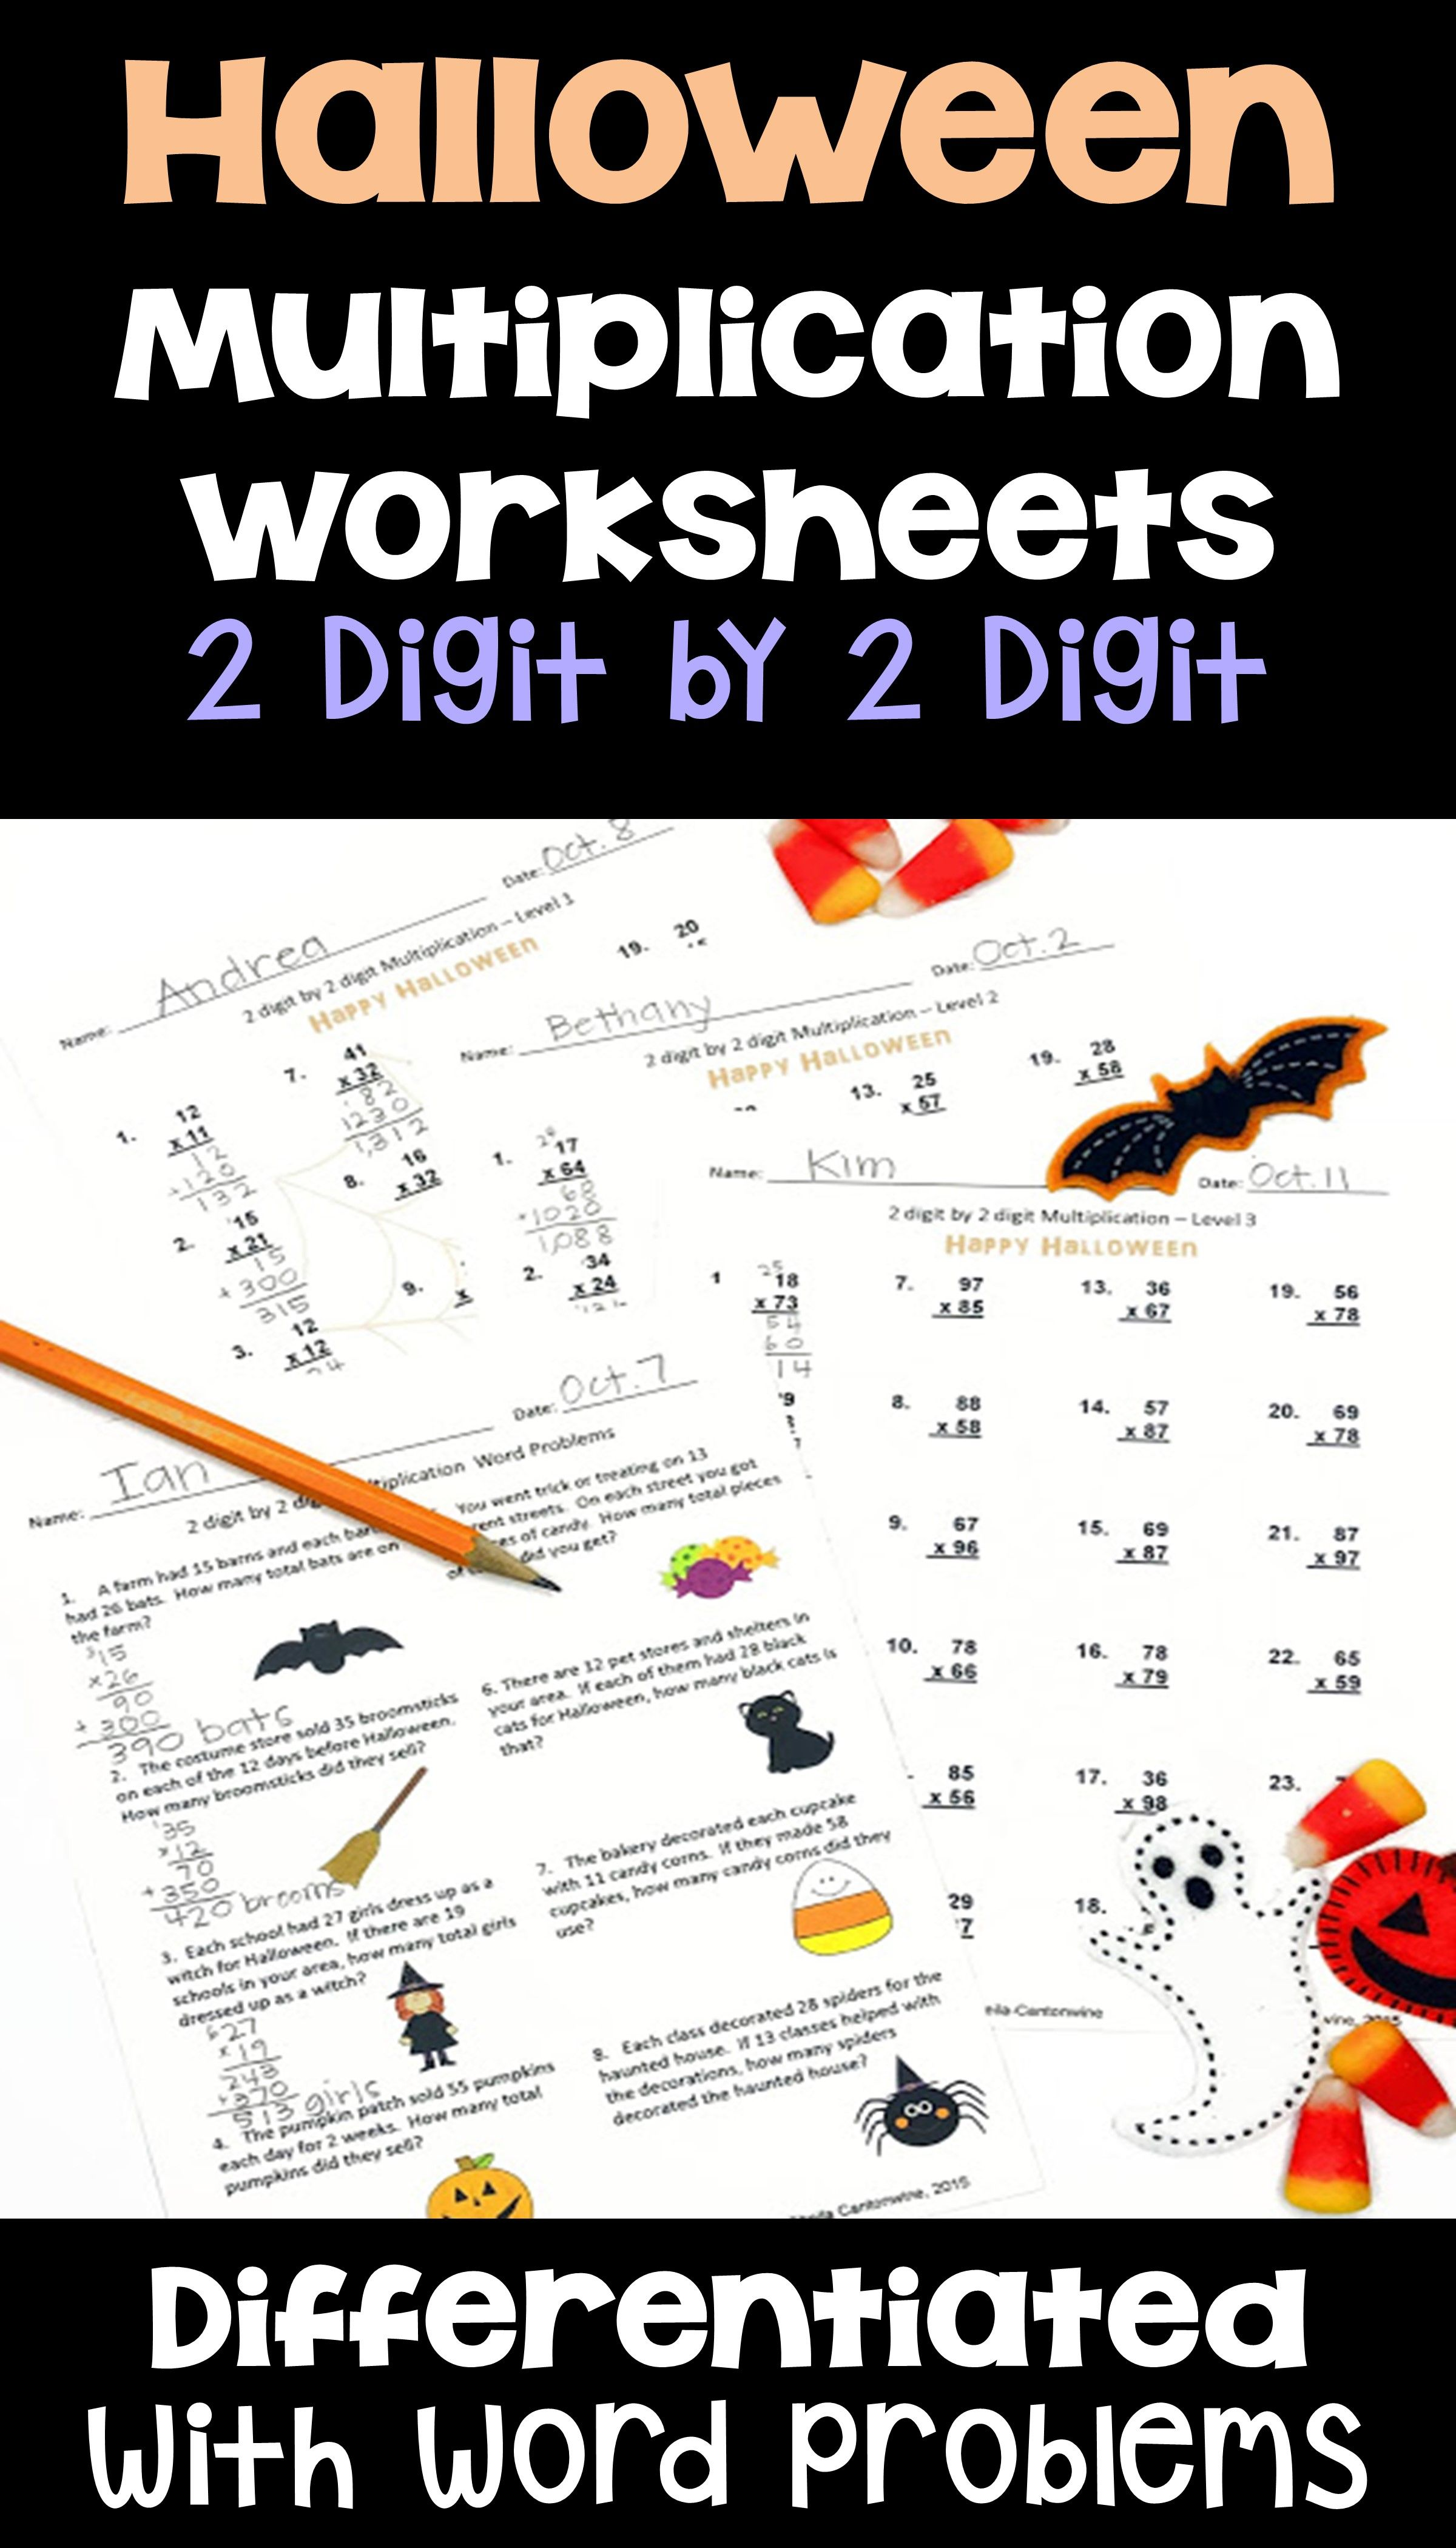 Halloween Math 2 Digit By 2 Digit Multiplication